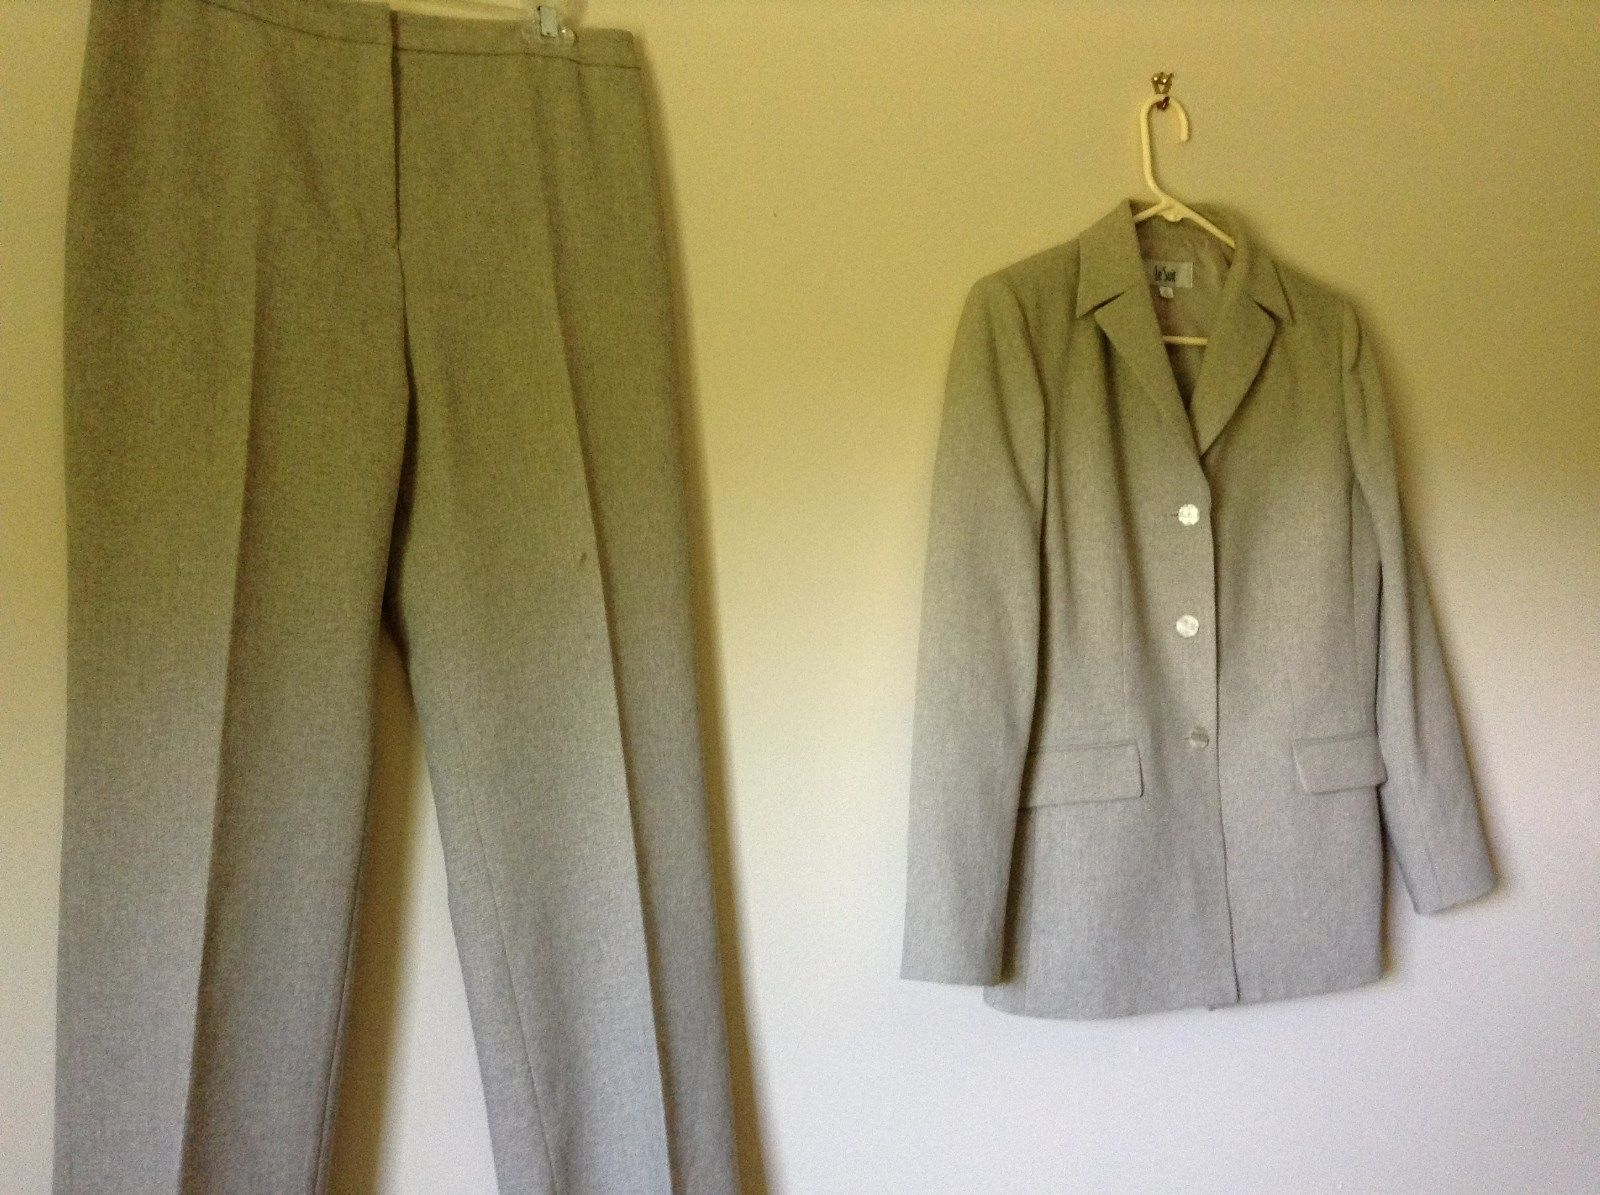 Le Suit Beige Formal Jacket and Pants Suit Shoulder Pads Size 10